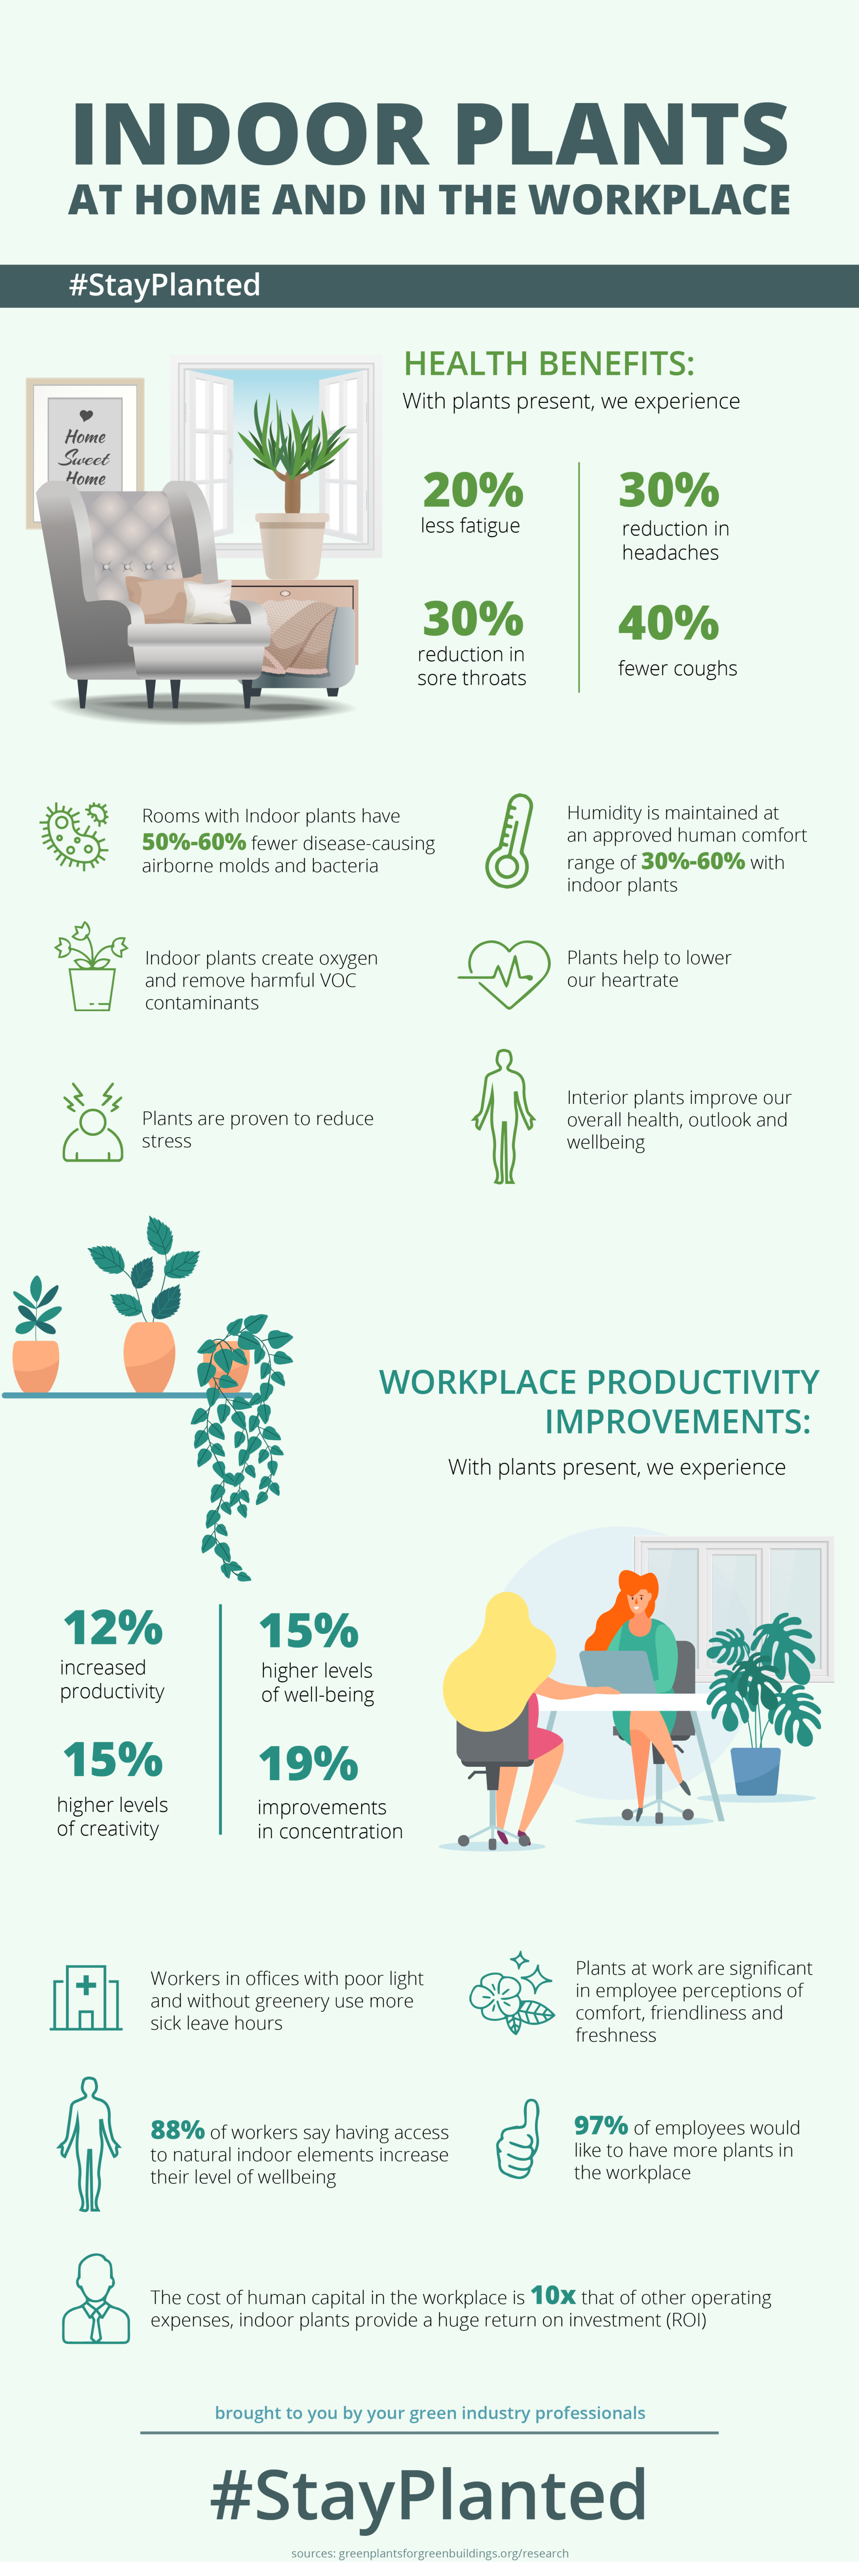 Benefits of Indoor Plants at work and home infographic